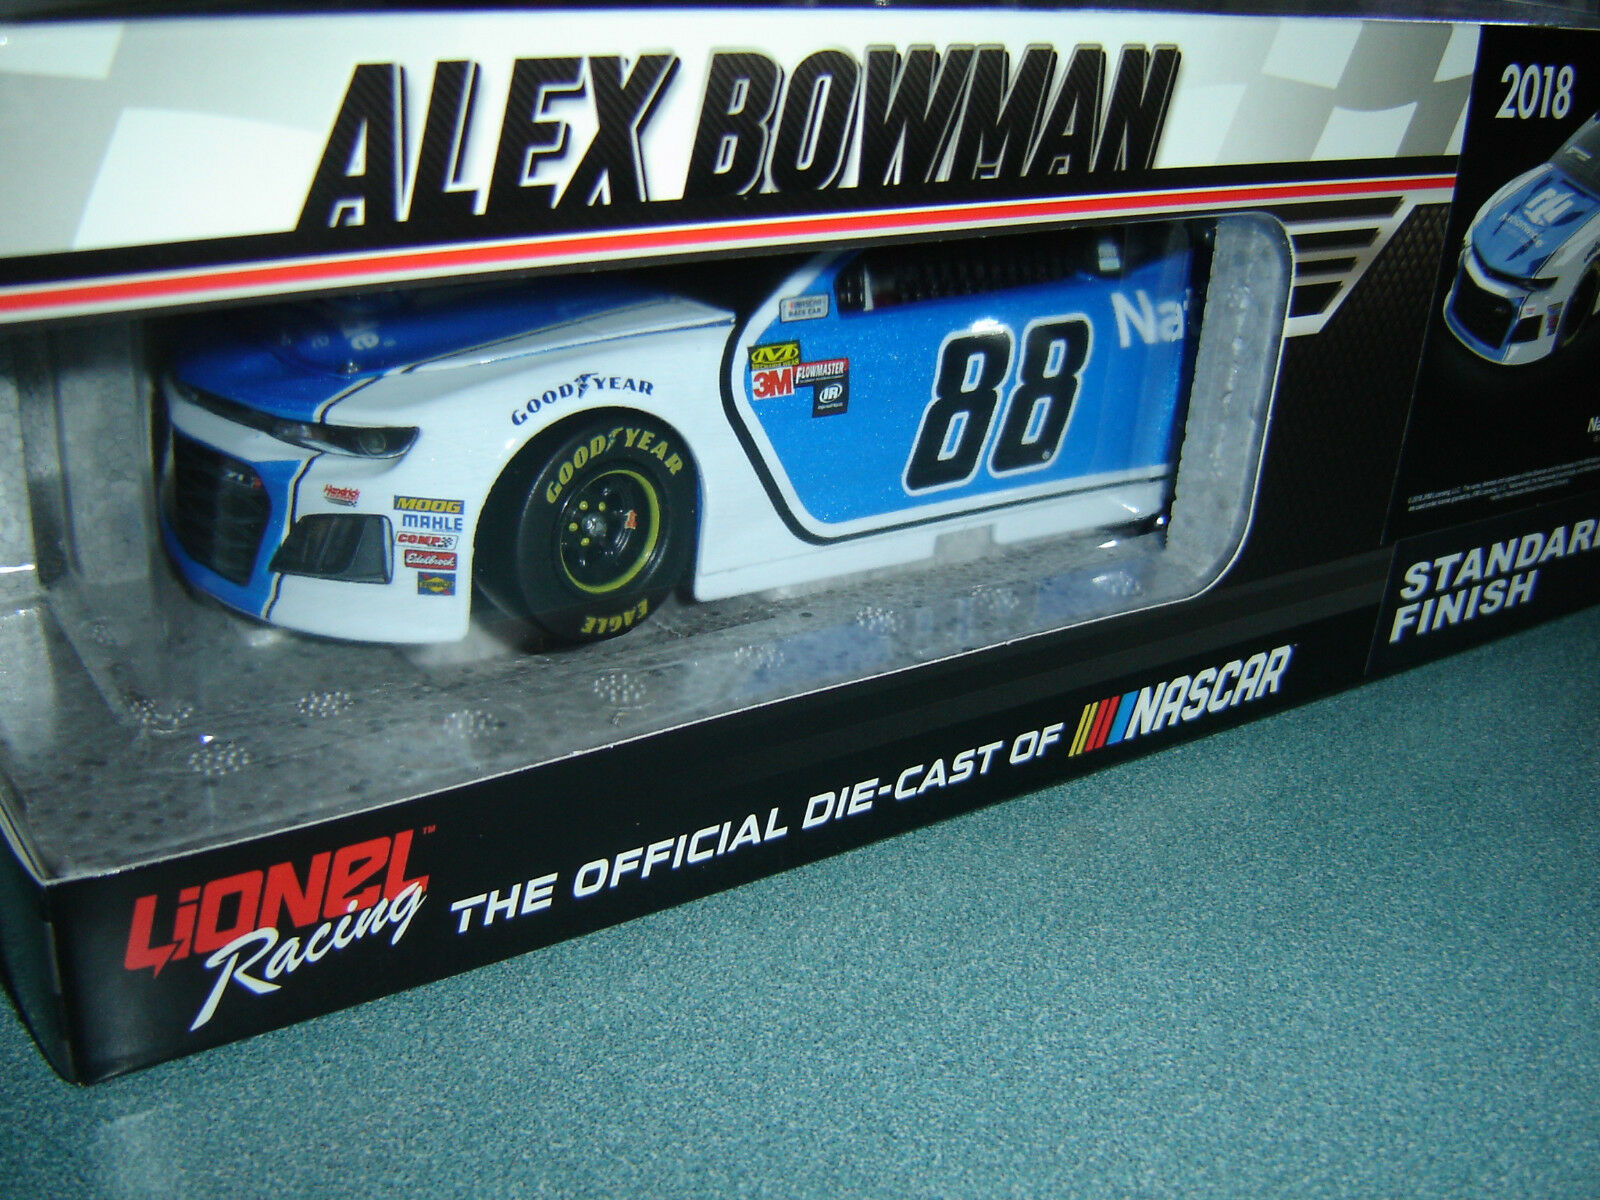 2018 Alex Bowman  88 88 88 Nationwide Camaro 1 24 Acción Nascar 1 Of 1388 en Stock 974638